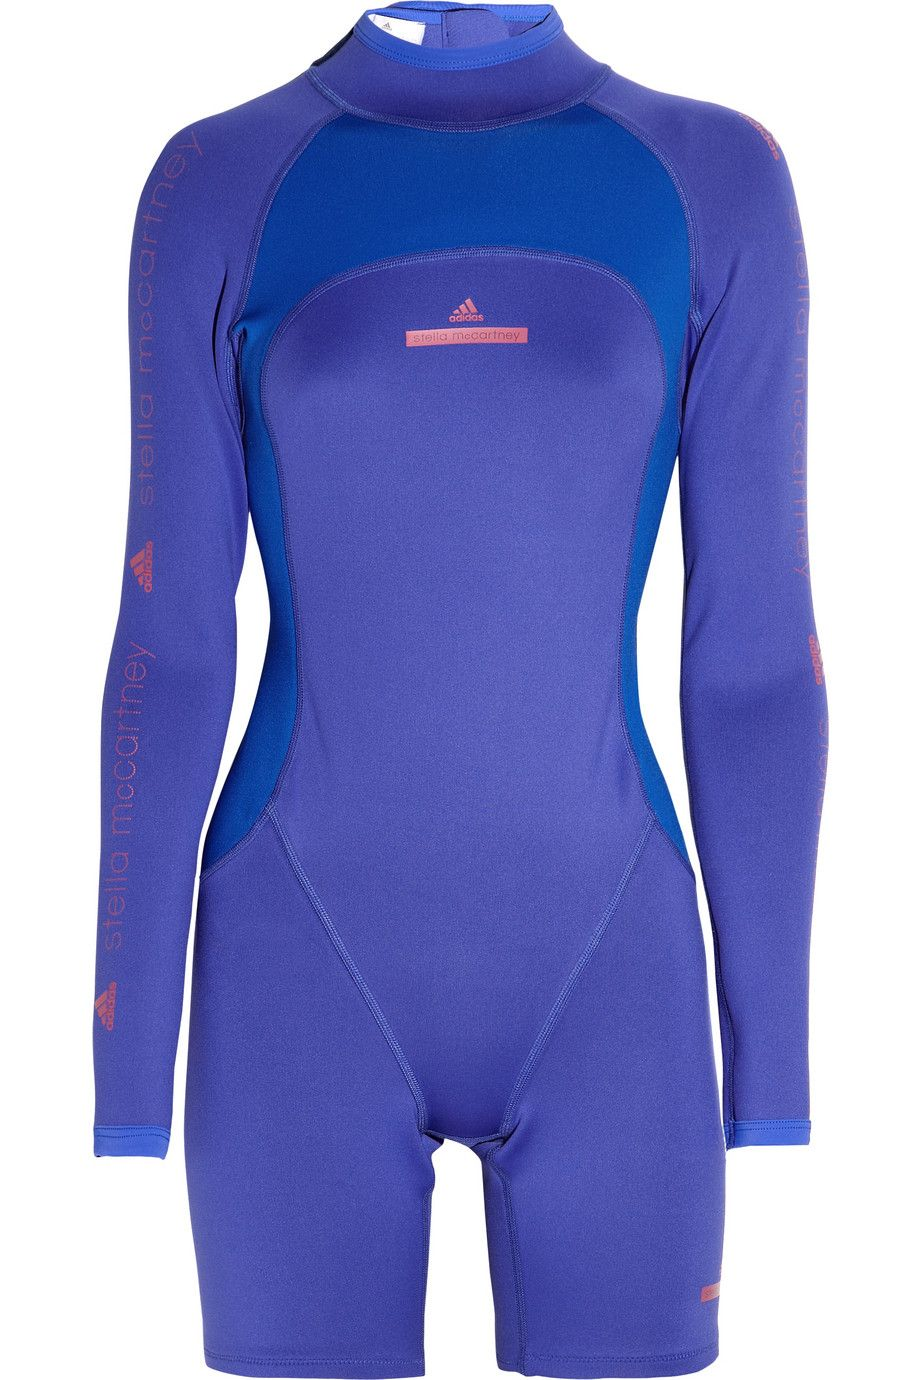 Turismo gancho adjetivo  Now THIS is a wetsuit I could get excited about. Adidas by Stella ...